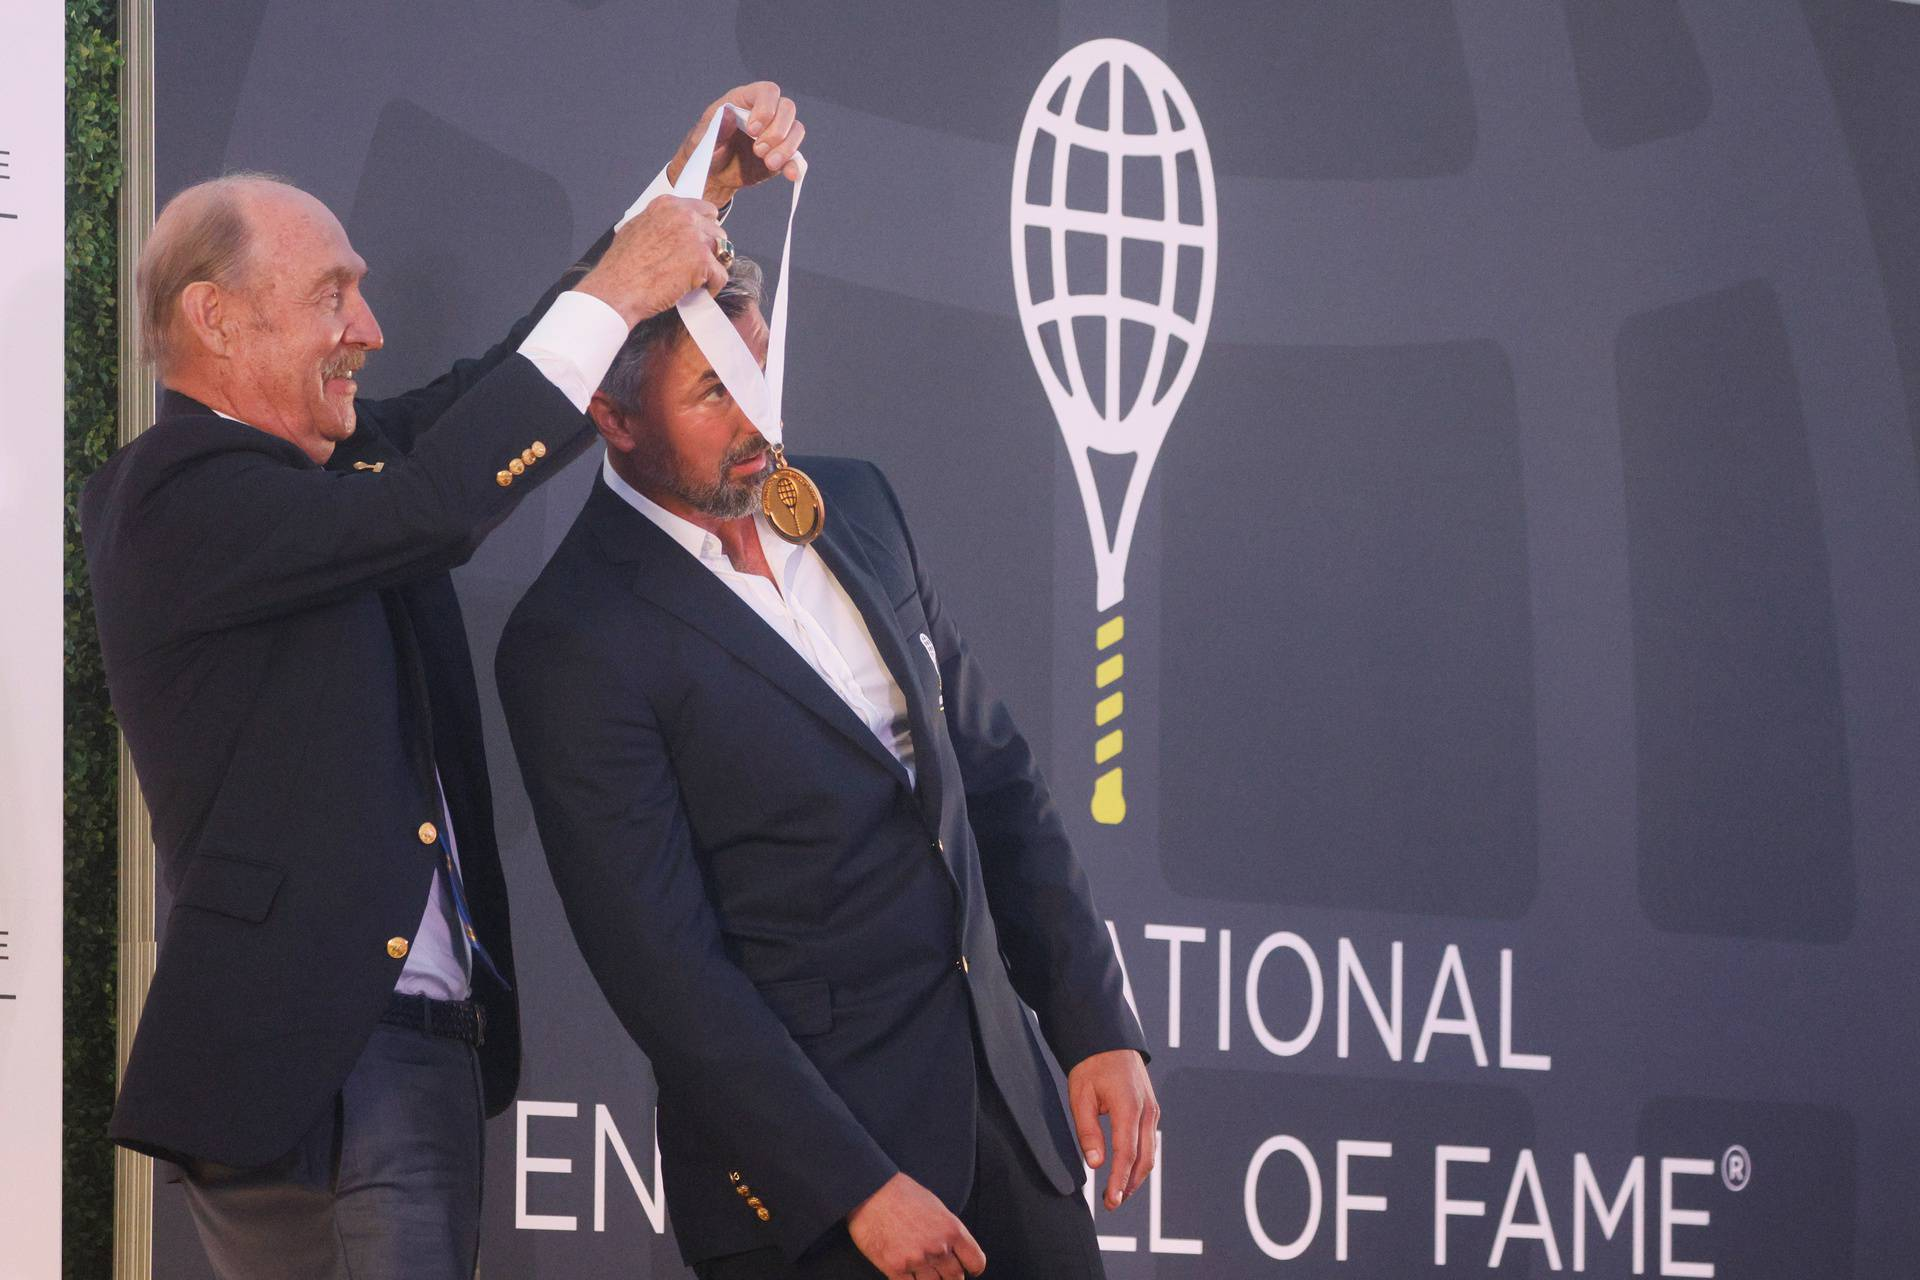 Goran Ivanisevic of Croatia is inducted into the International Tennis Hall of Fame in Newport